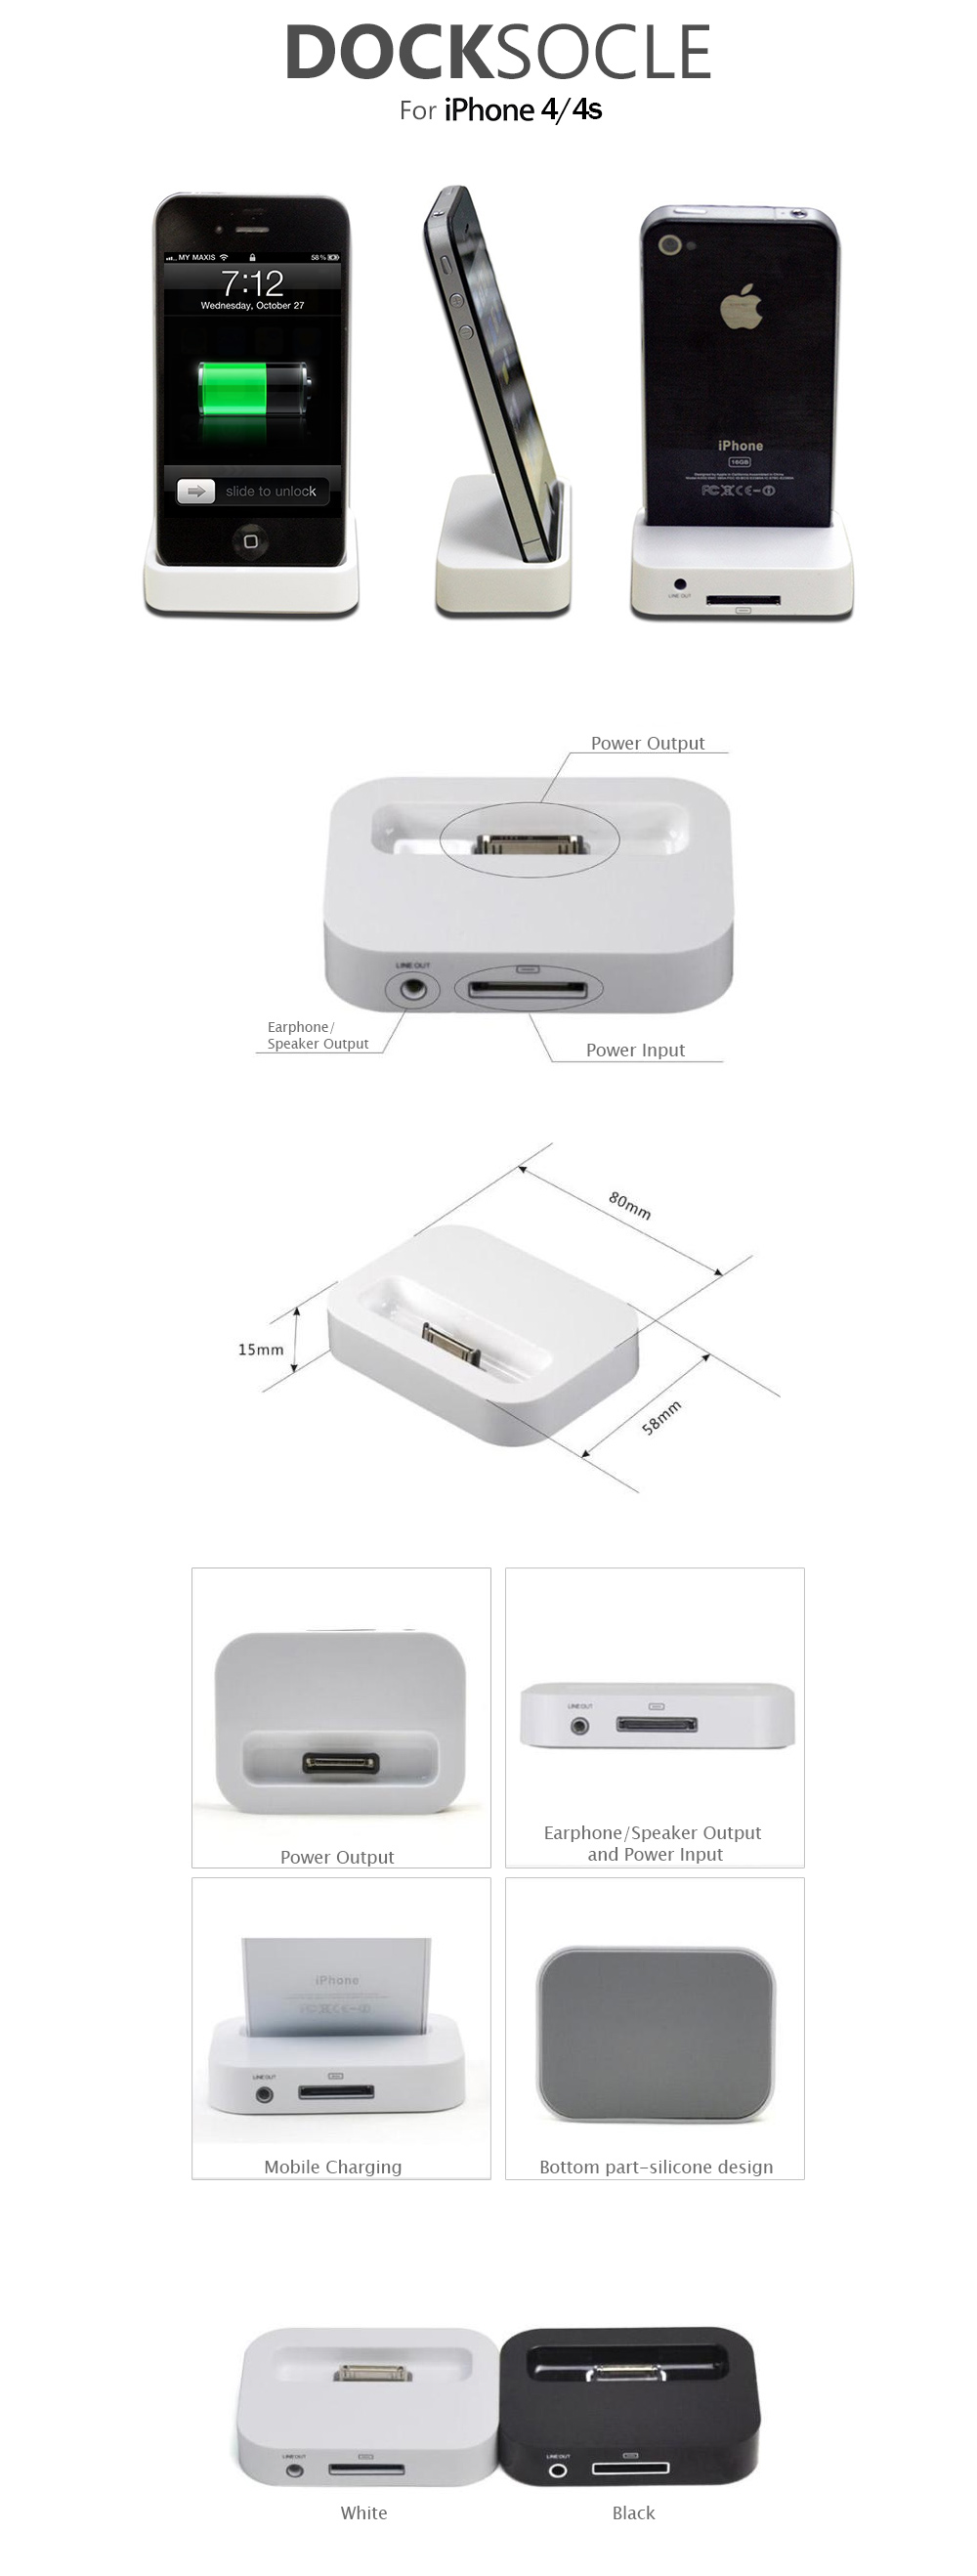 dock socle stand charger with speaker earphone output for iphone 4 4s 11street malaysia. Black Bedroom Furniture Sets. Home Design Ideas